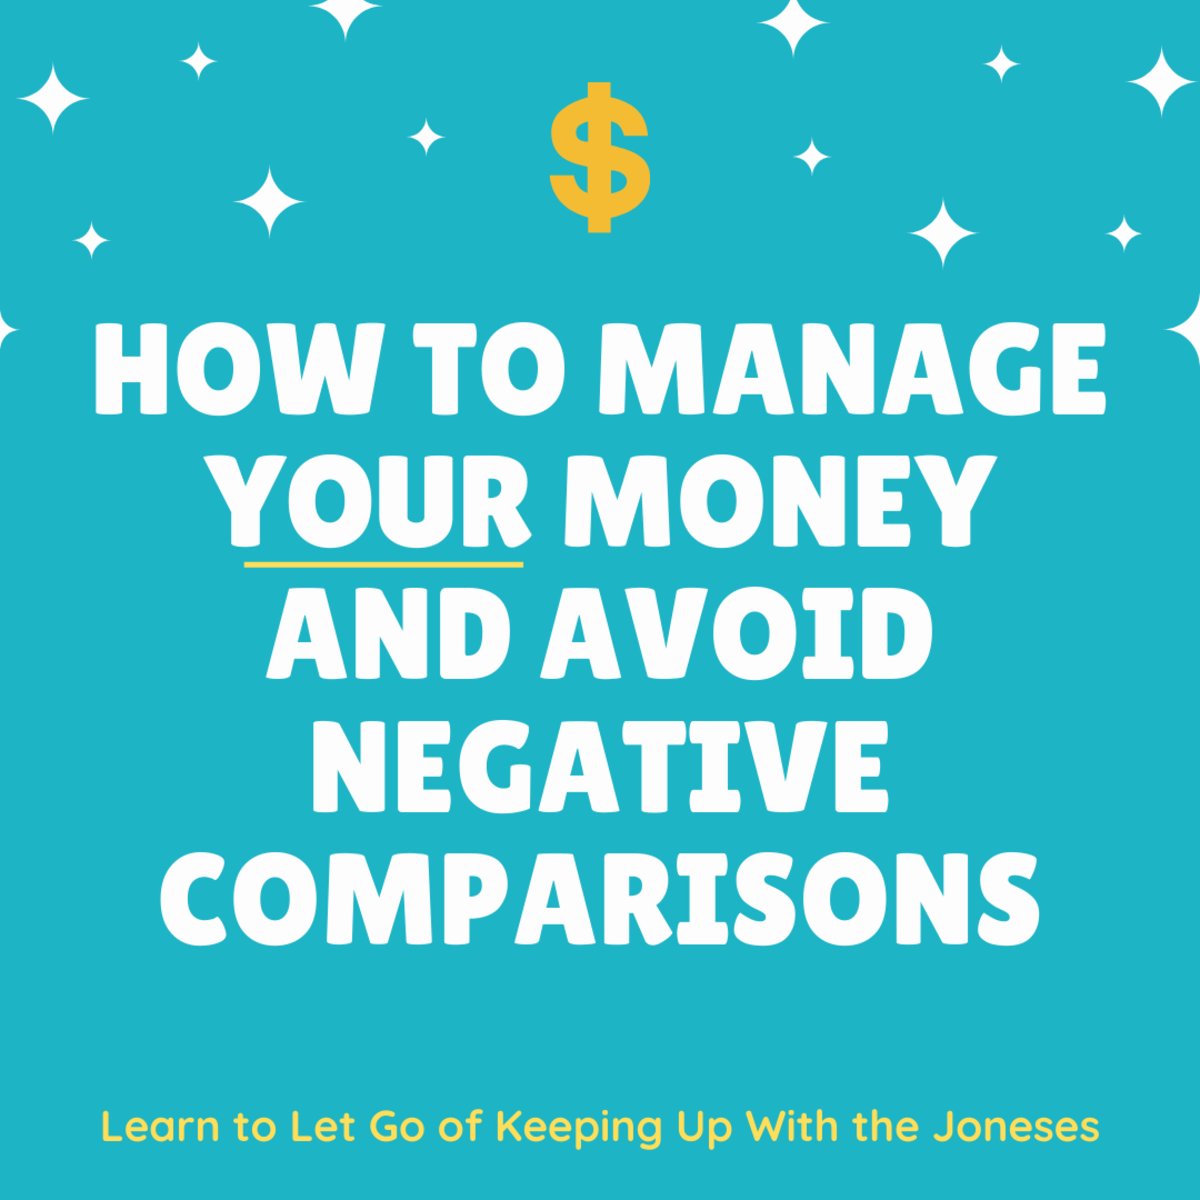 Get advice on how to read personal finance blogs without feeling bad about your own budget.